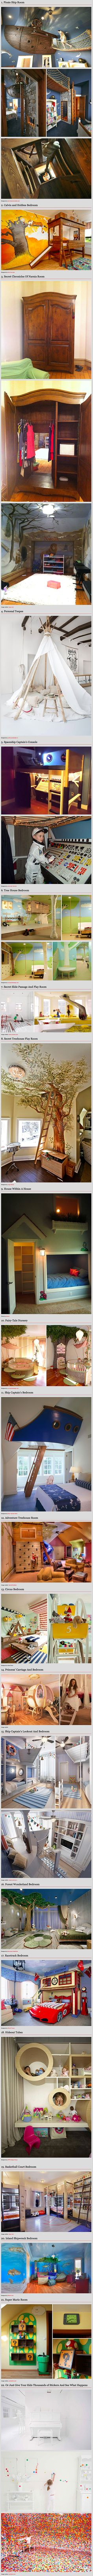 22 Cool and Creative Room Designs That Geeky Kids Would Love - TechEBlog